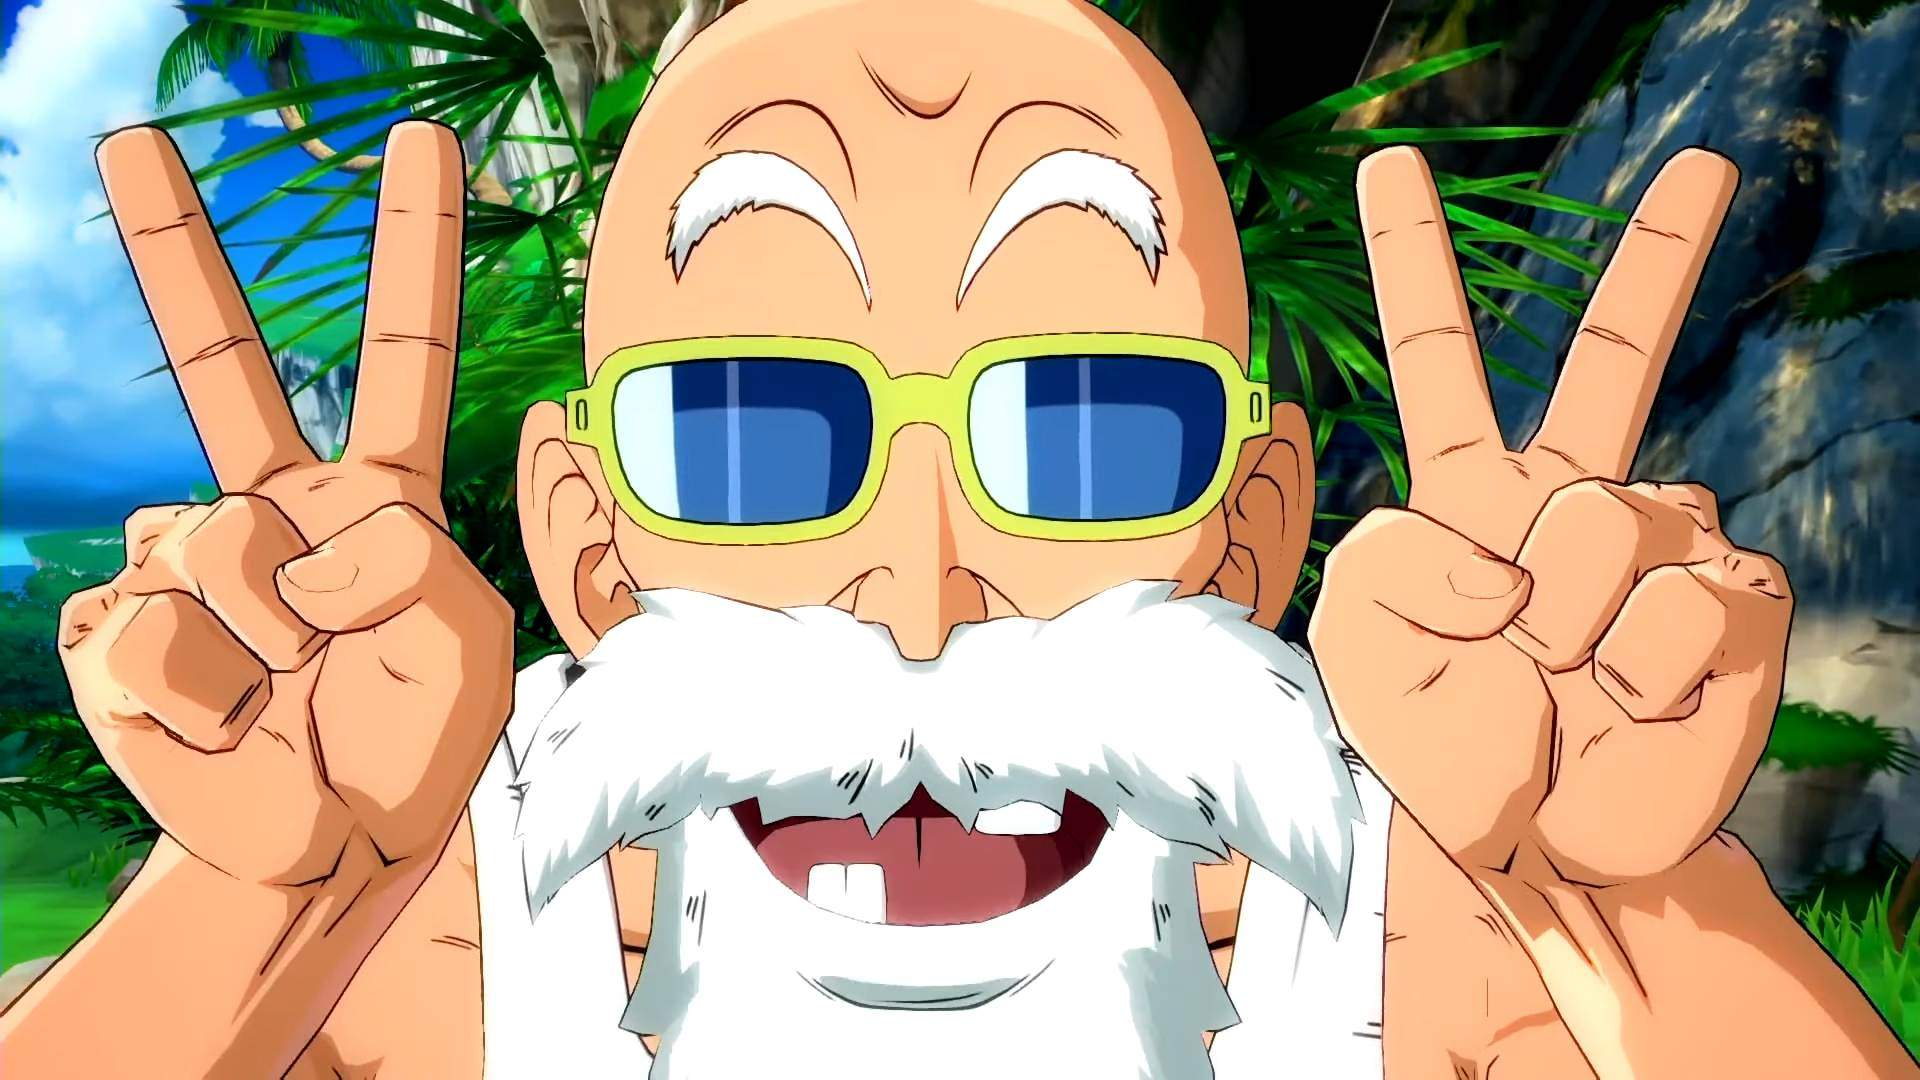 Master Roshi V Jump scans reveal surprising details about his gameplay